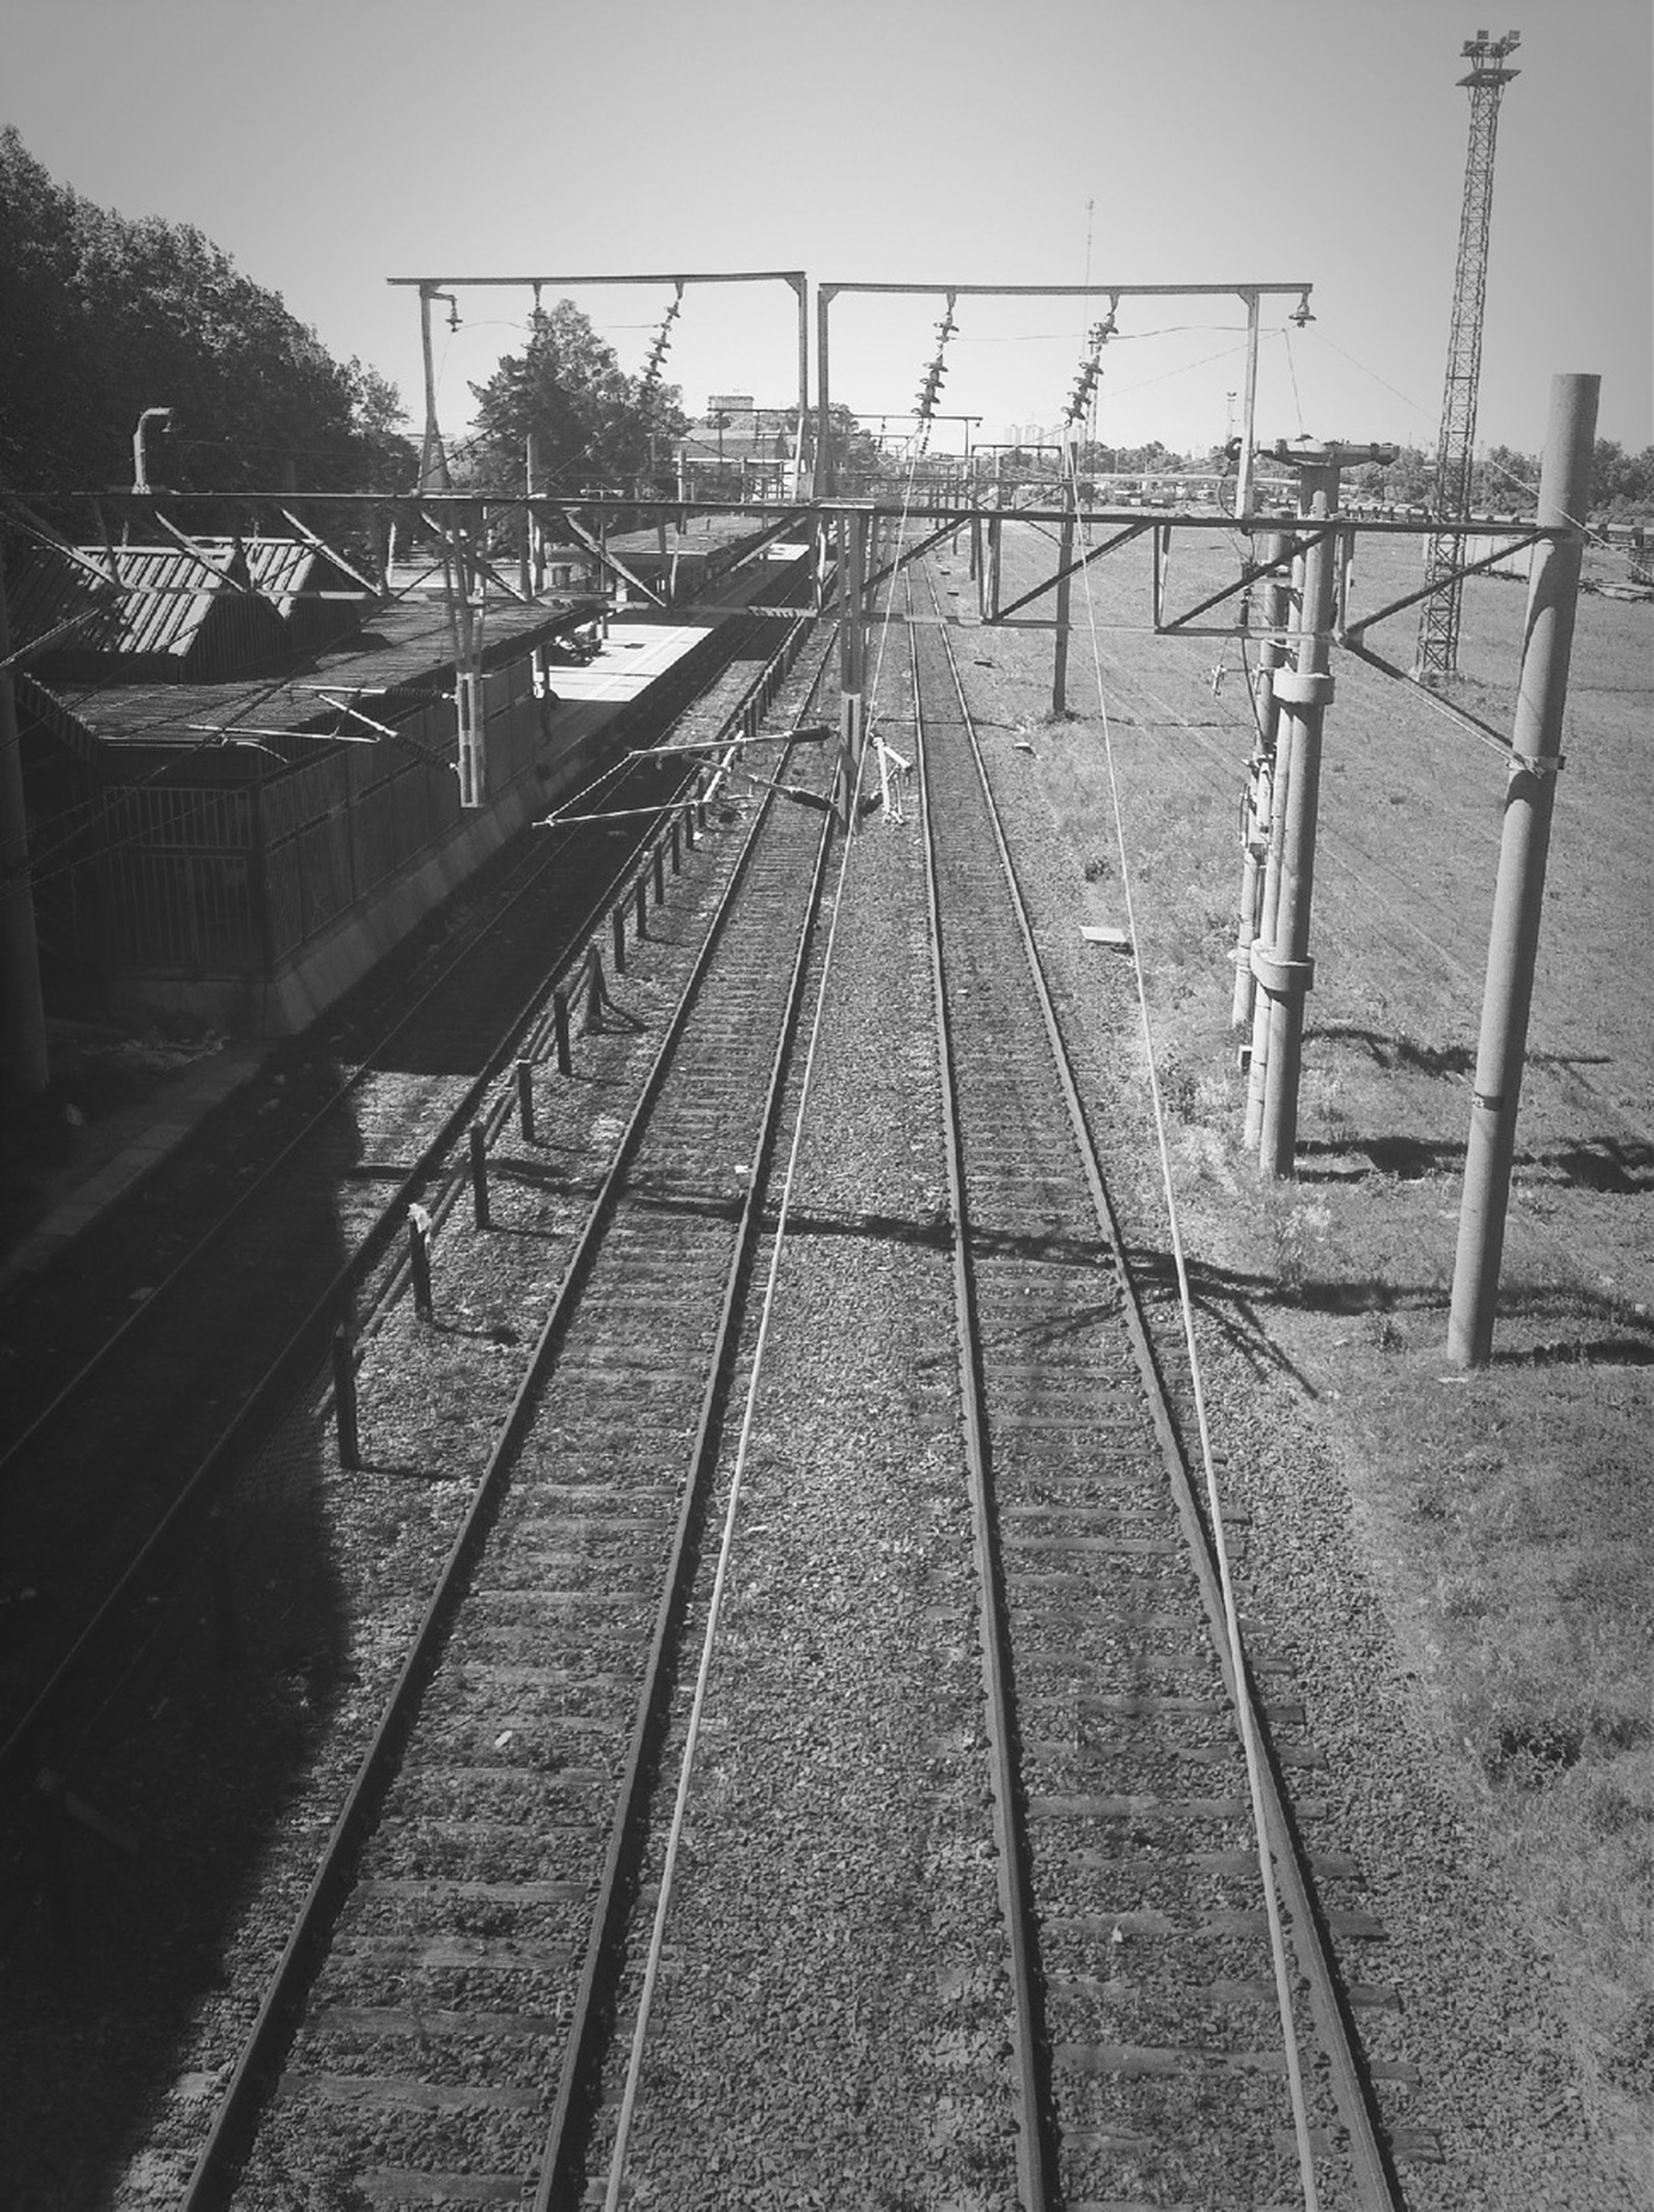 railroad track, transportation, rail transportation, clear sky, public transportation, built structure, the way forward, sky, railroad station, railroad station platform, mode of transport, day, metal, outdoors, architecture, diminishing perspective, sunlight, vanishing point, connection, no people